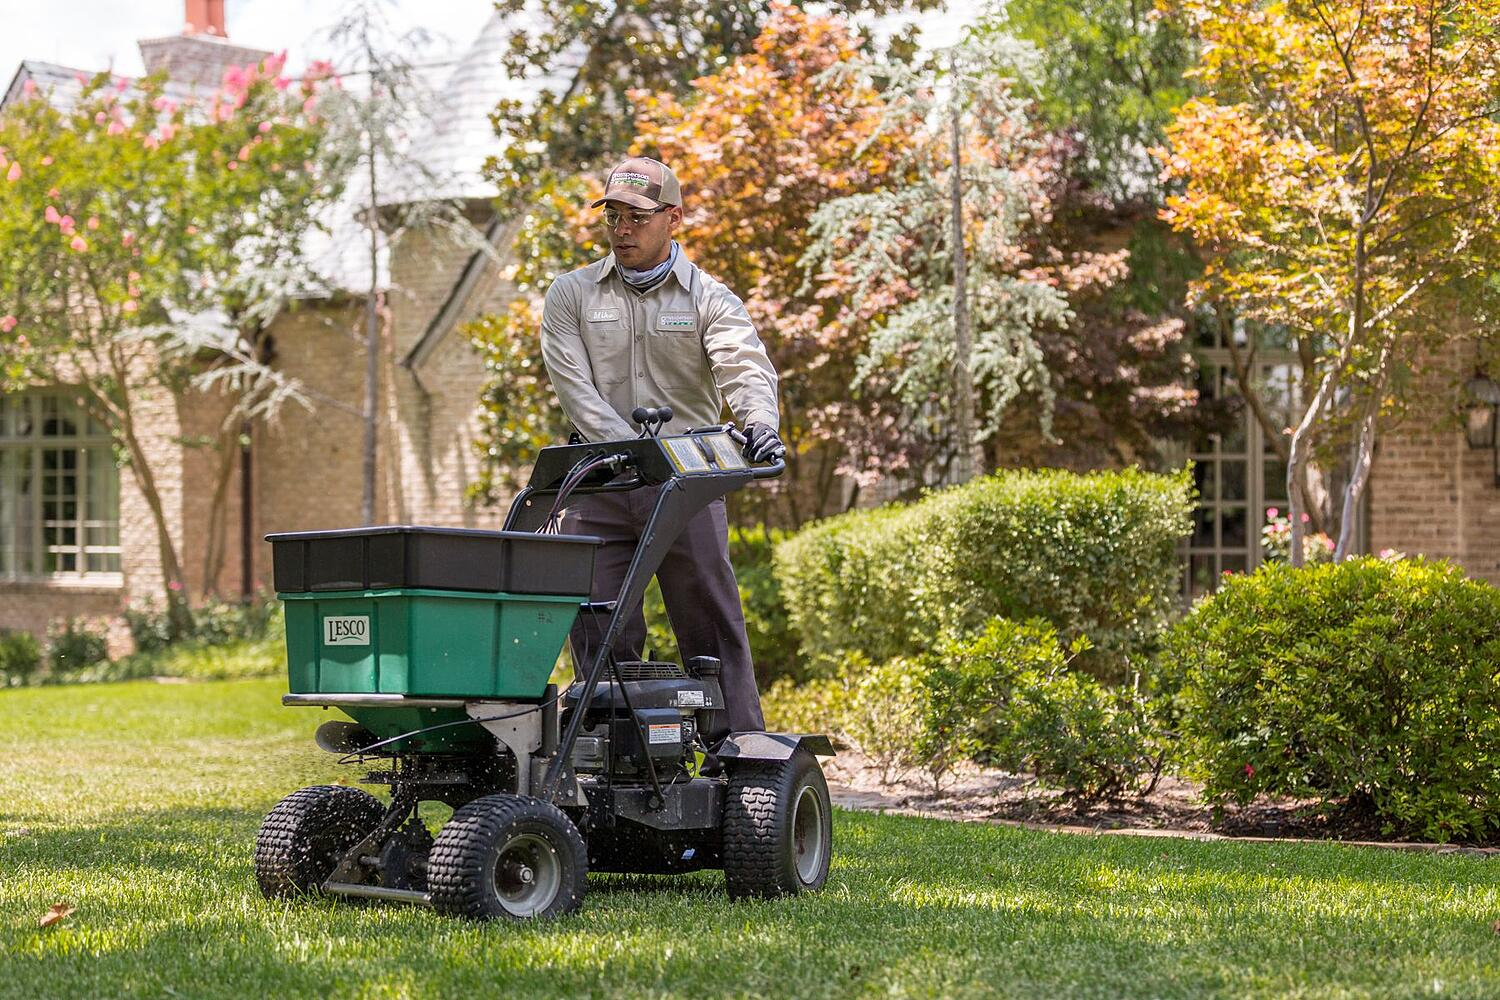 lawn care service crew treating lawn in Flower Mound, TX